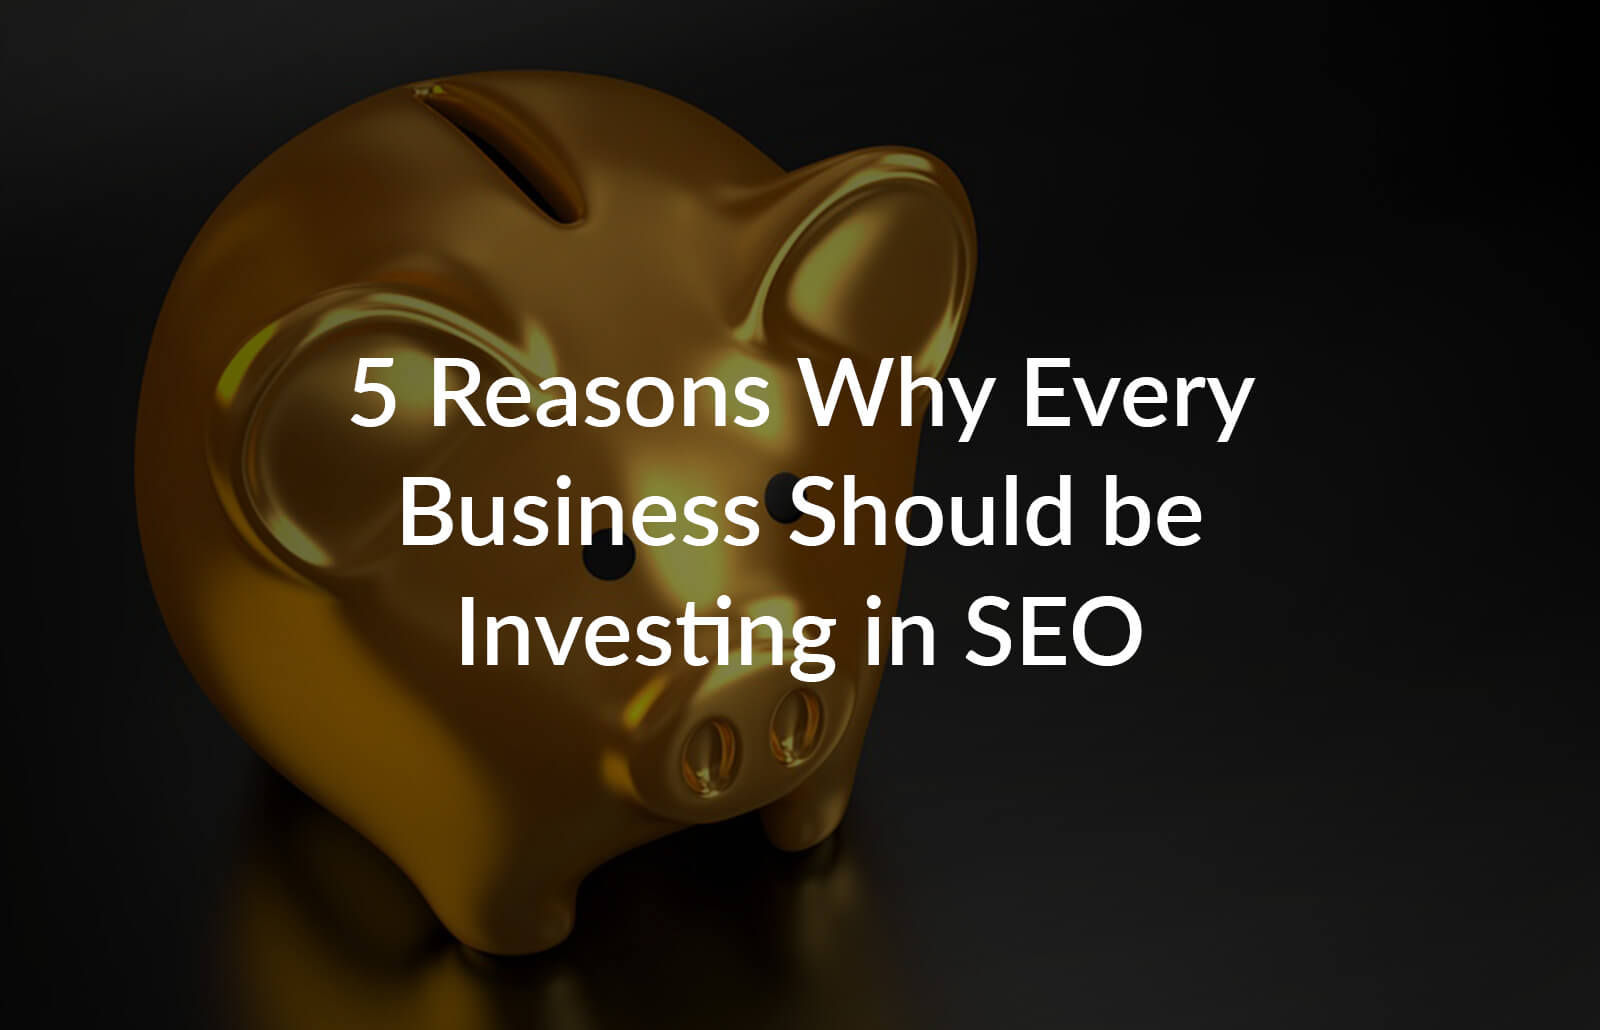 5 Reasons Why Every Business Should Be Investing In SEO